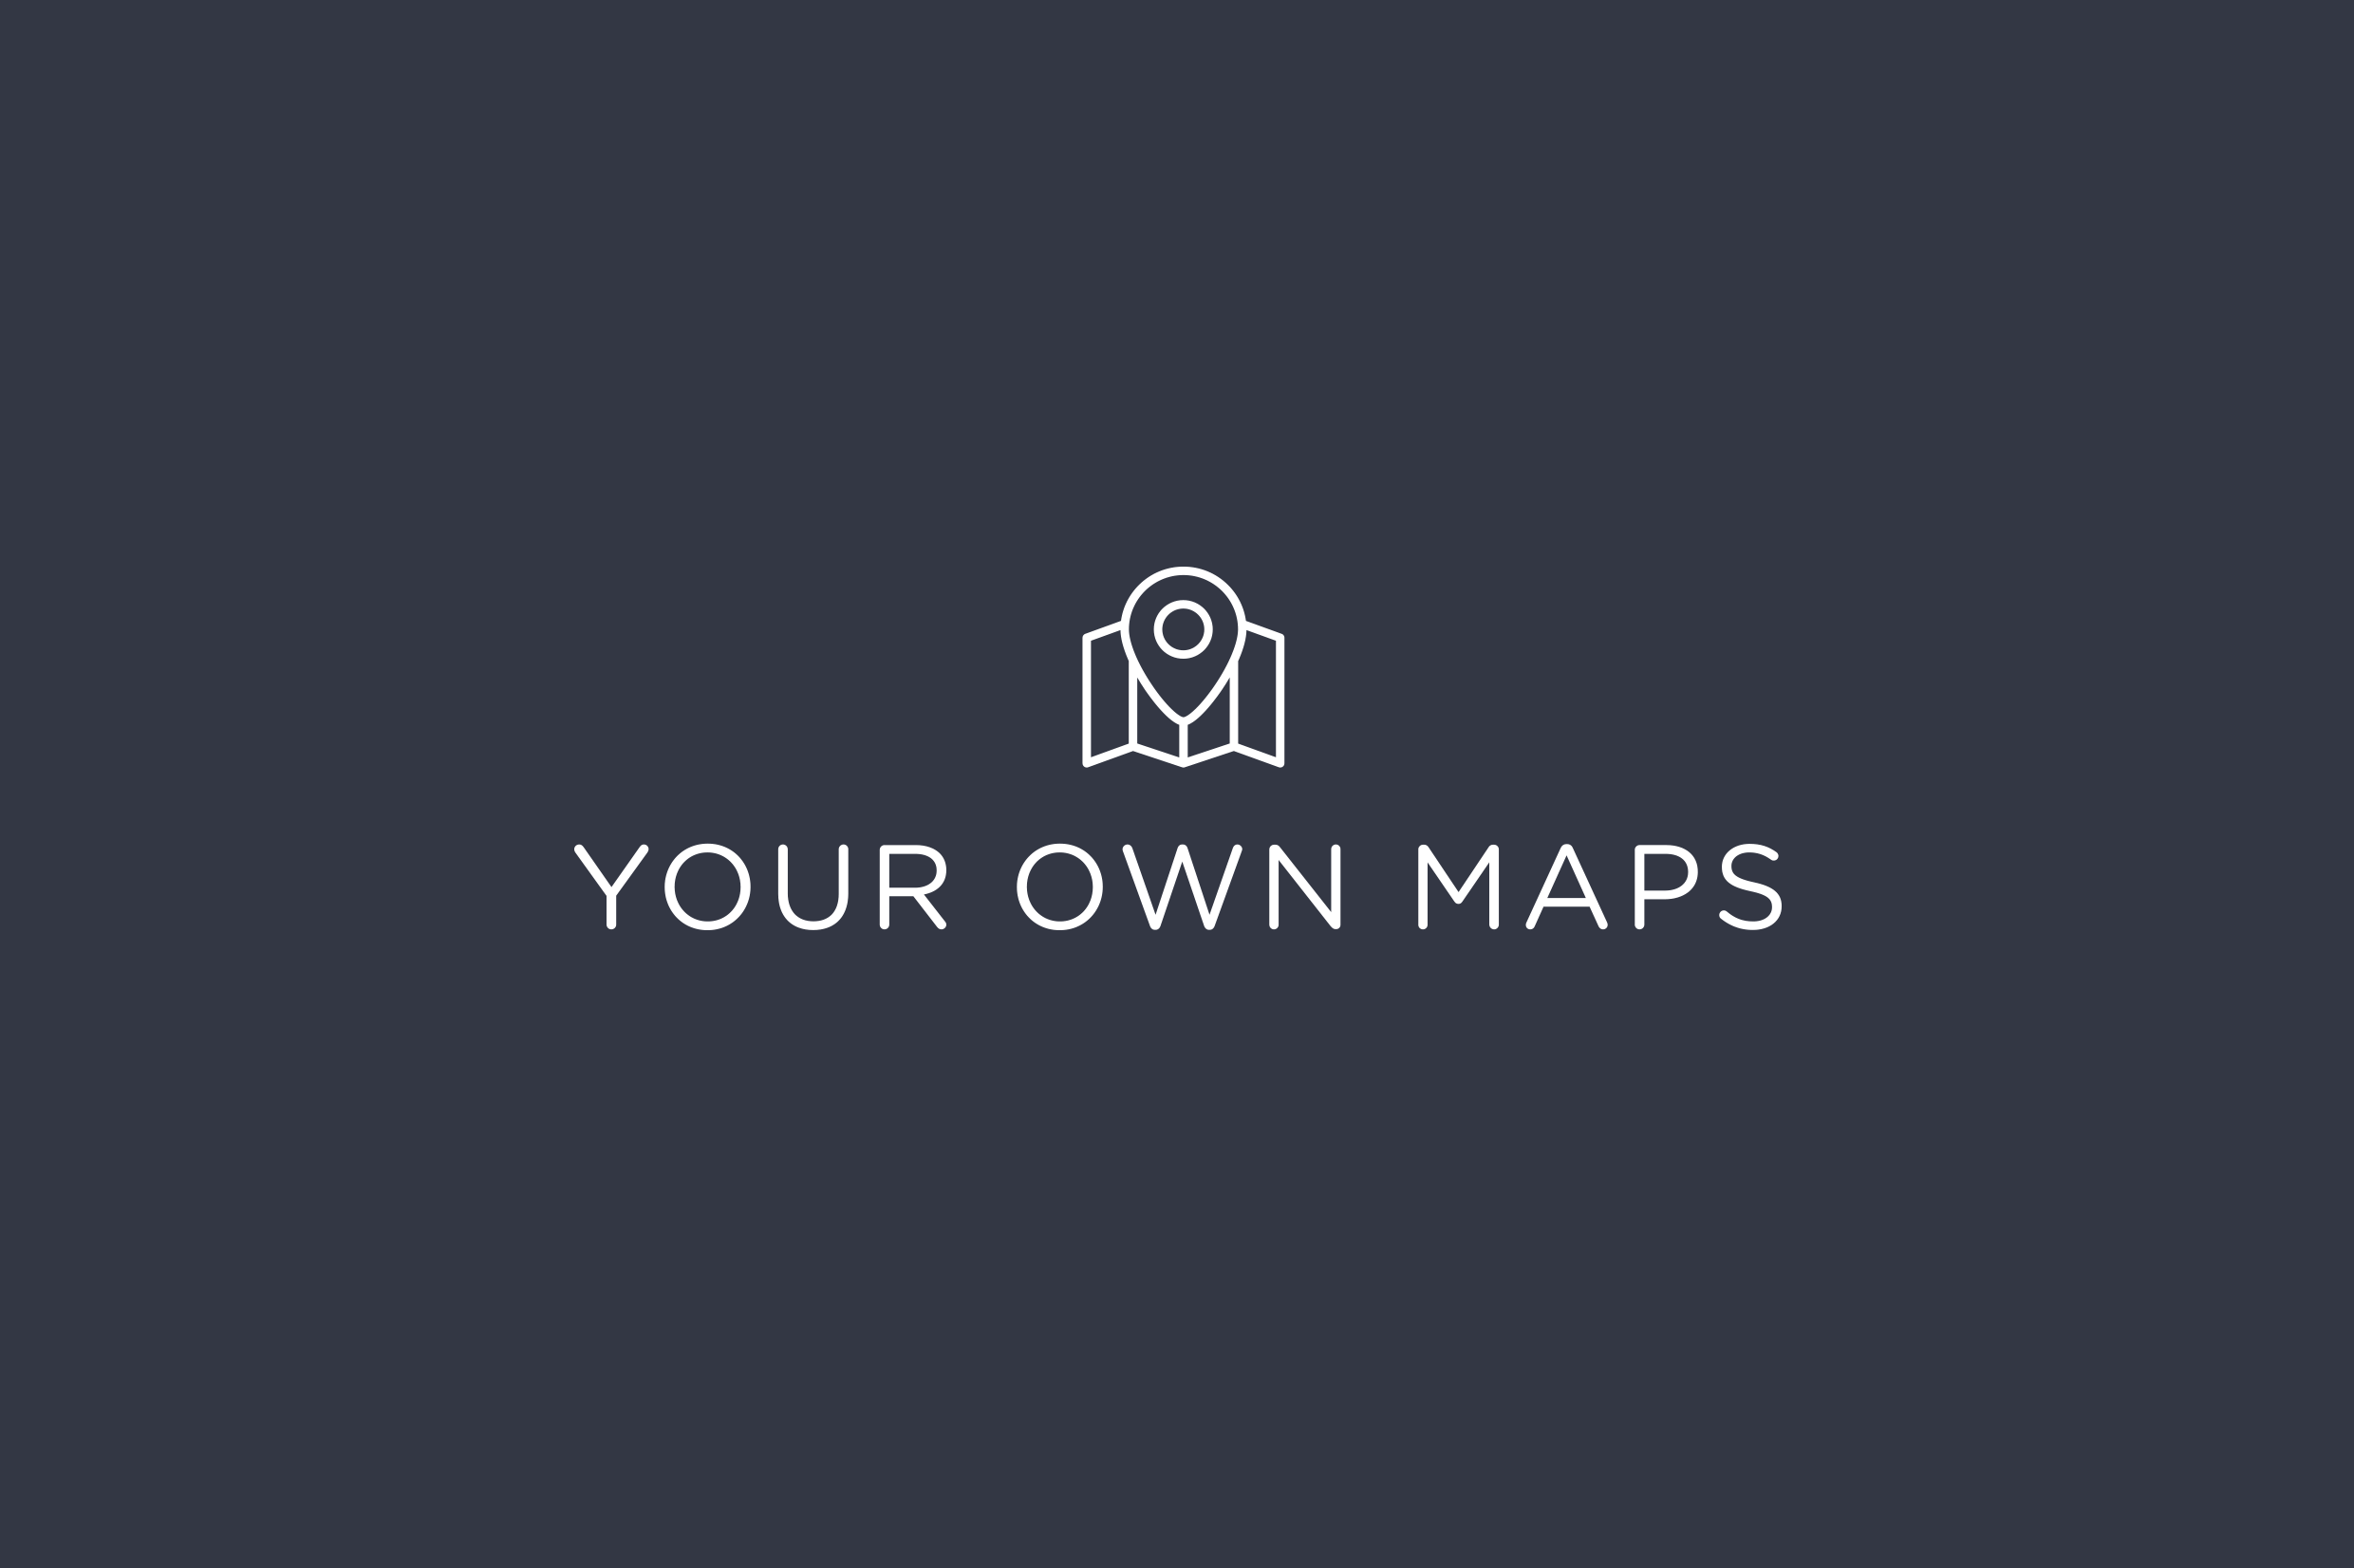 Your Own Maps